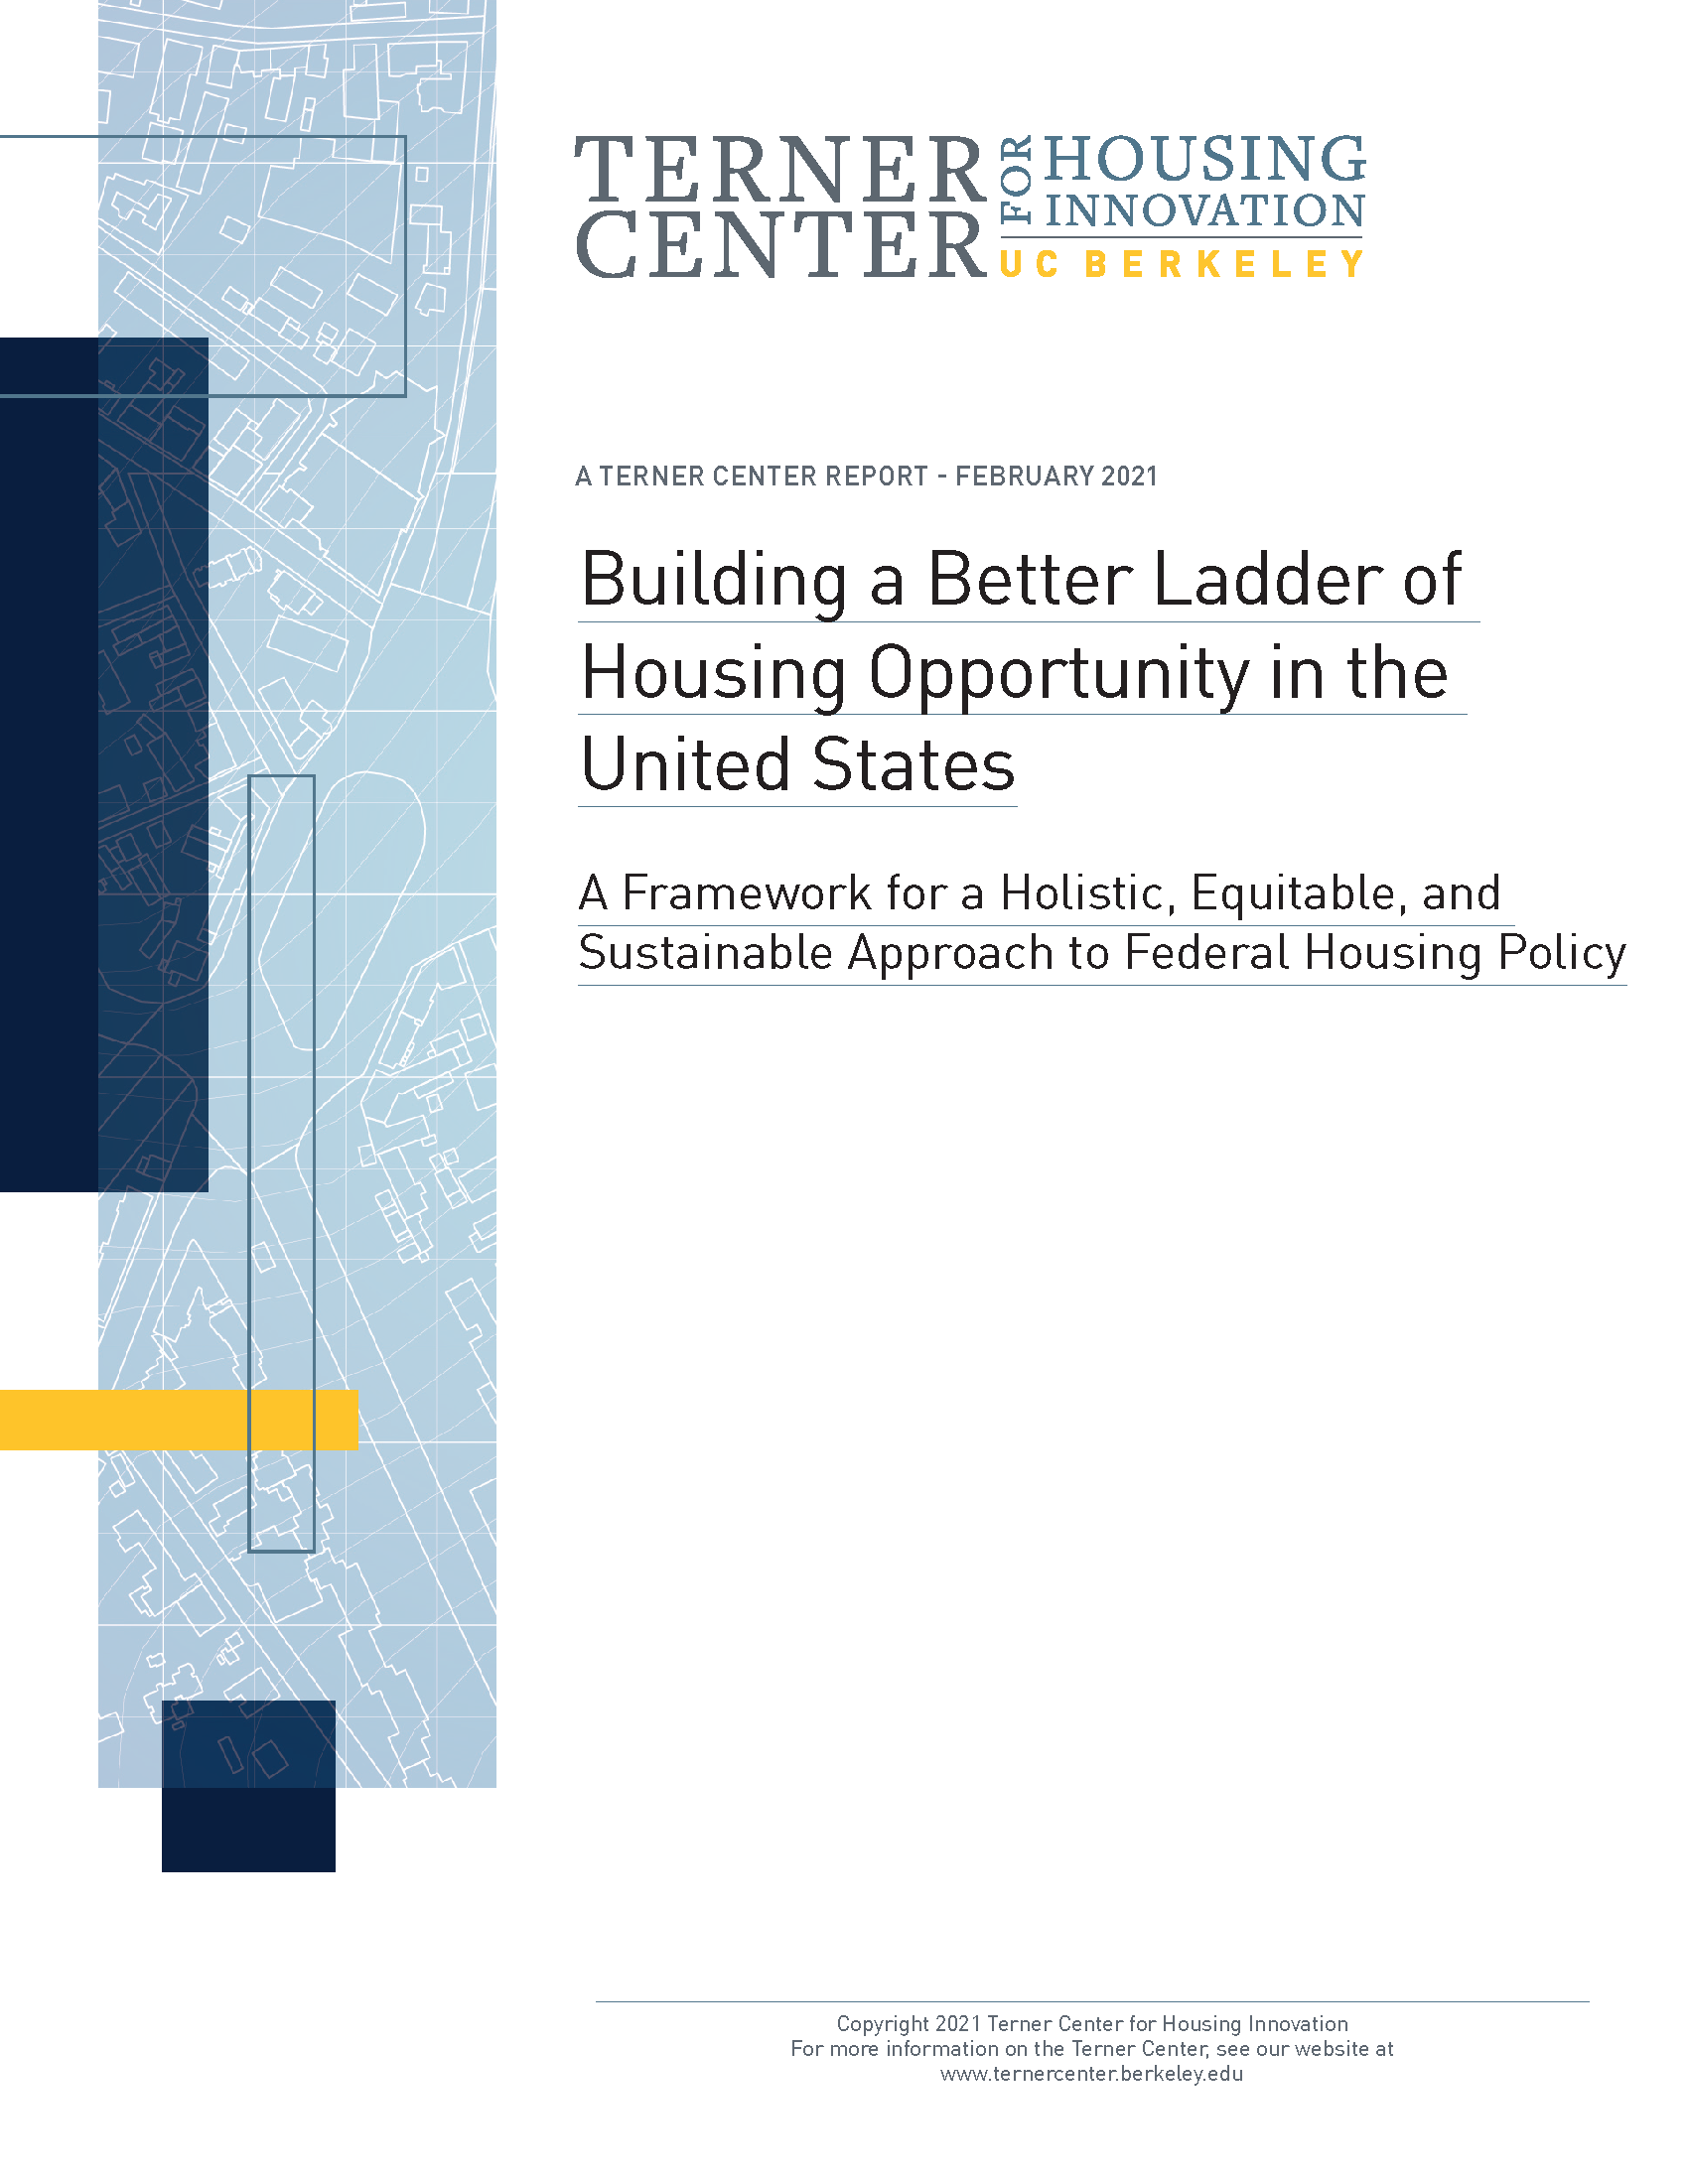 Cover Image of Federal Framework Brief